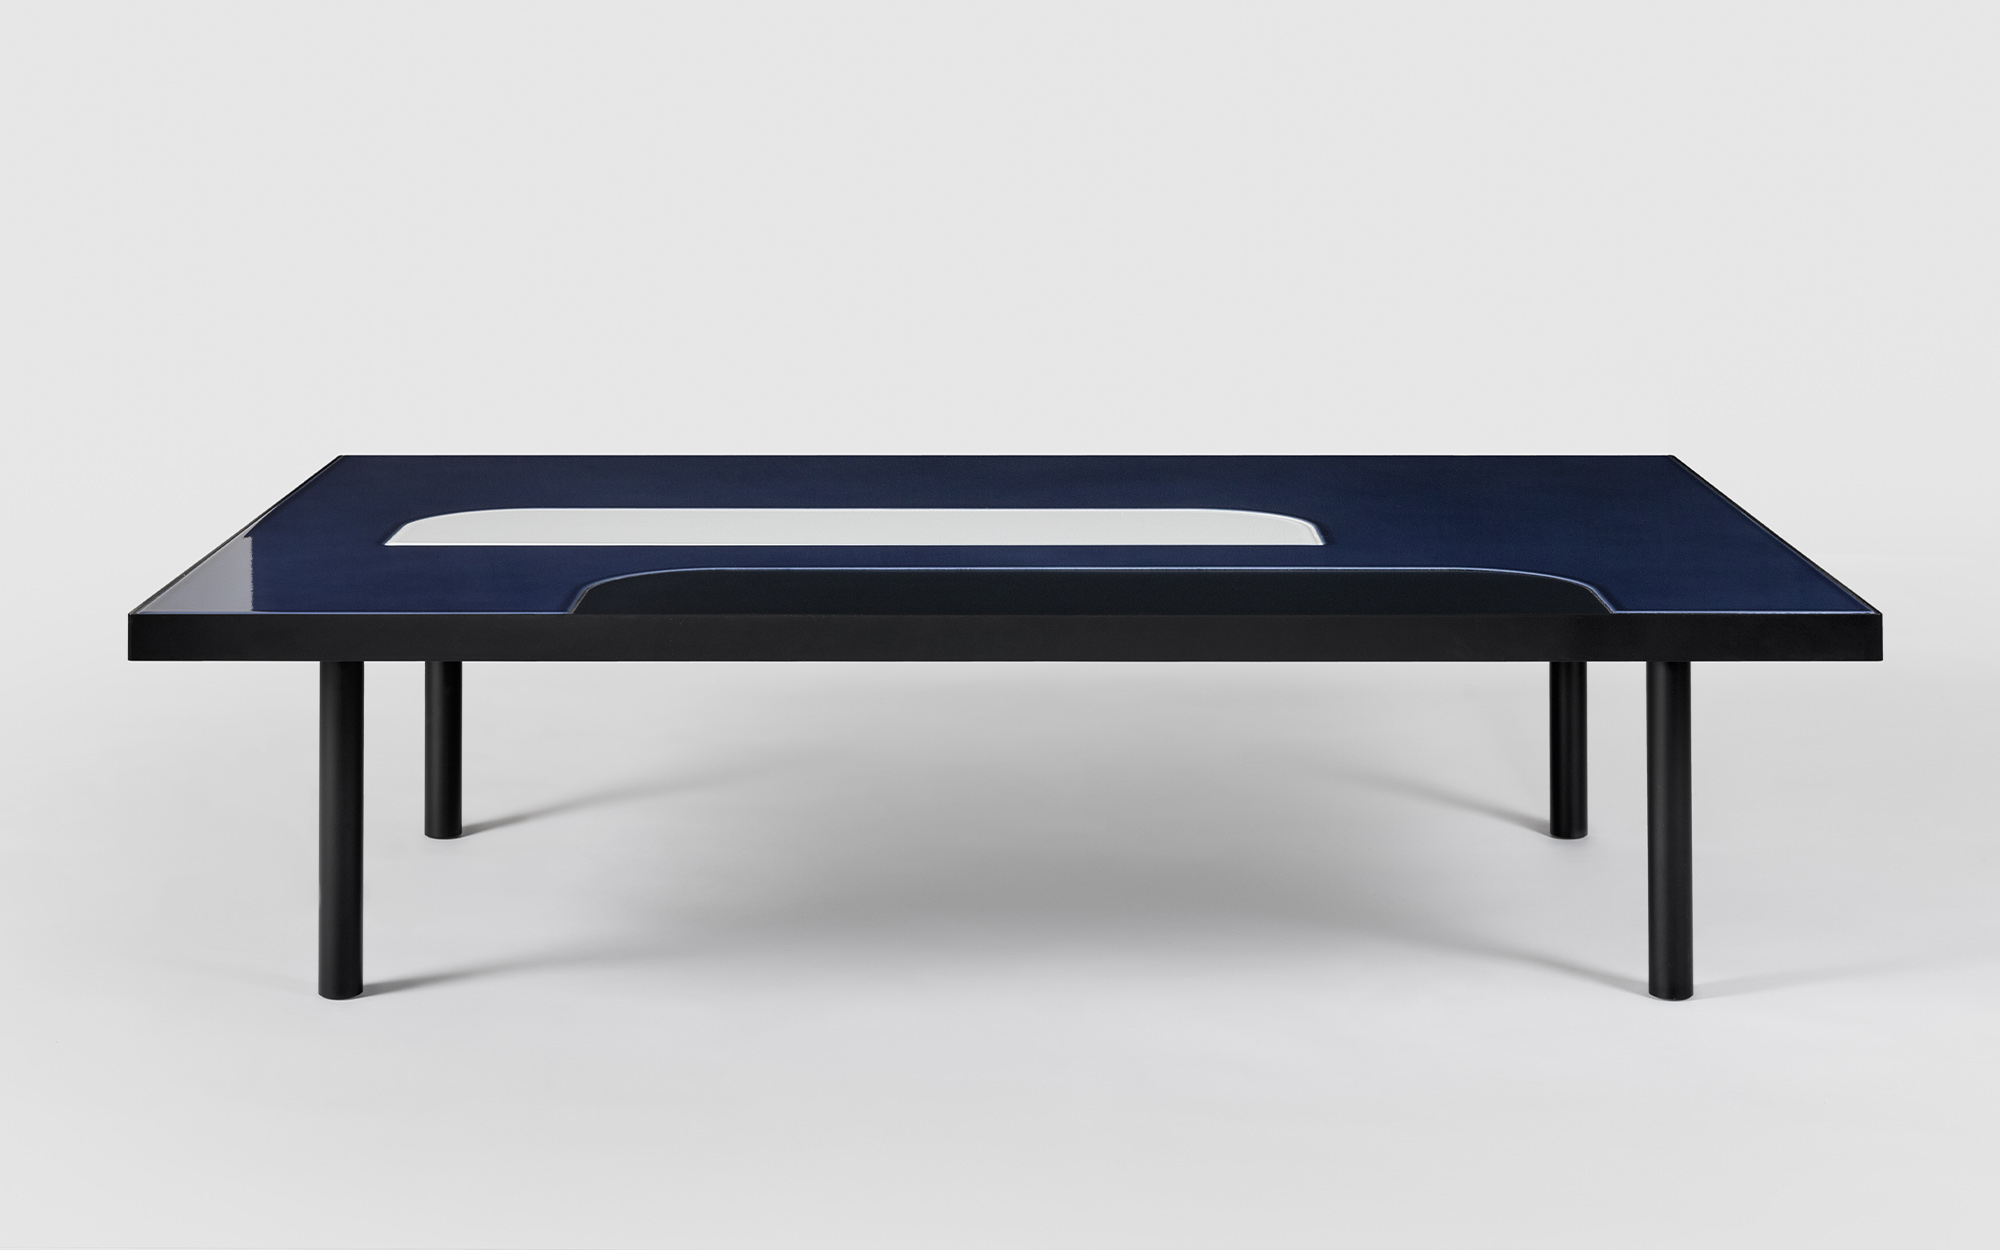 Pierre Charpin Translation Capsula Coffee Table